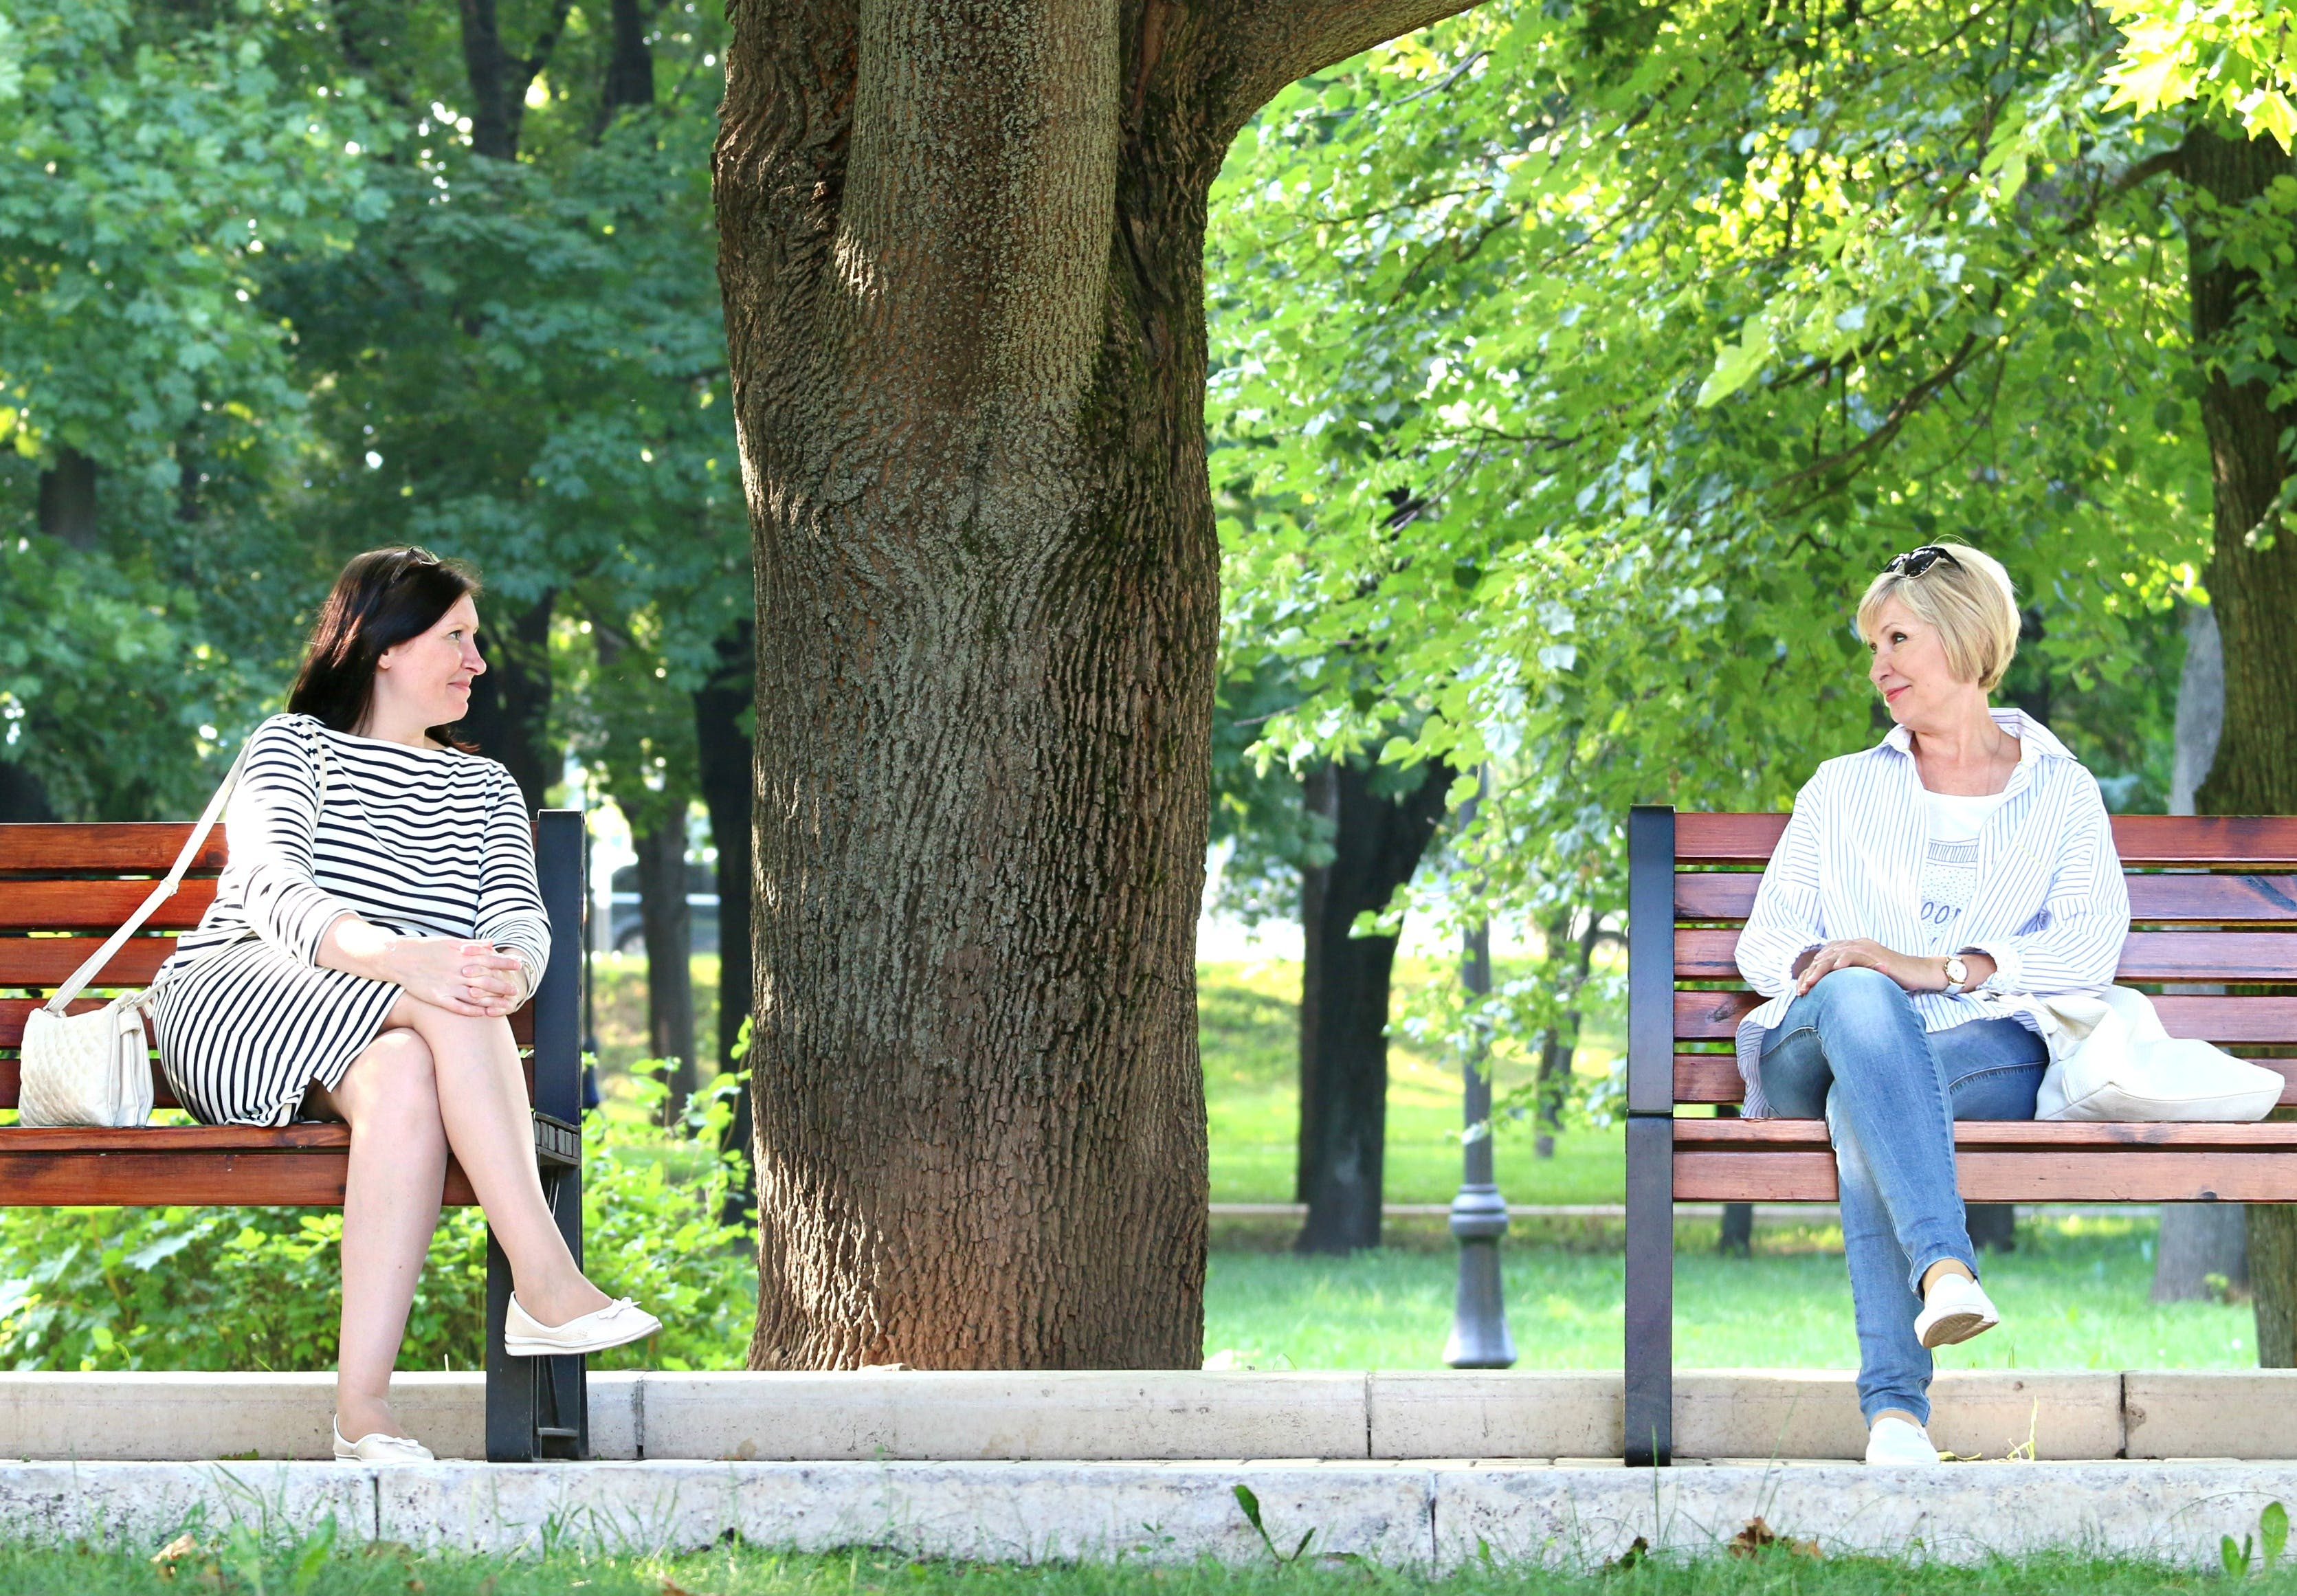 2 Woman Sitting in the Different Bench Chair Near Tree in the Park during Daytime